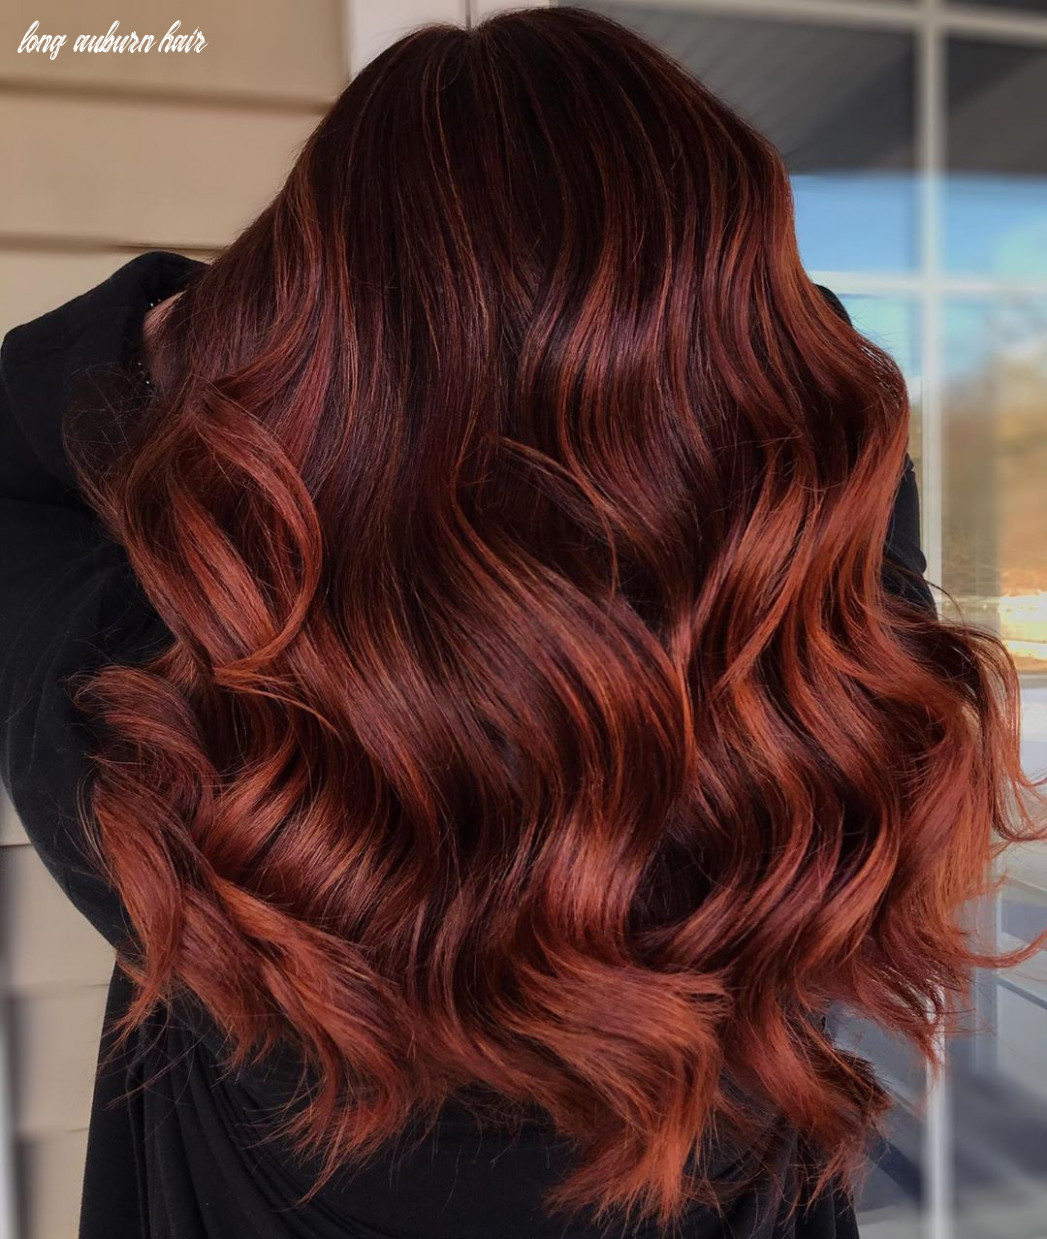 12 dainty auburn hair ideas to inspire your next color appointment